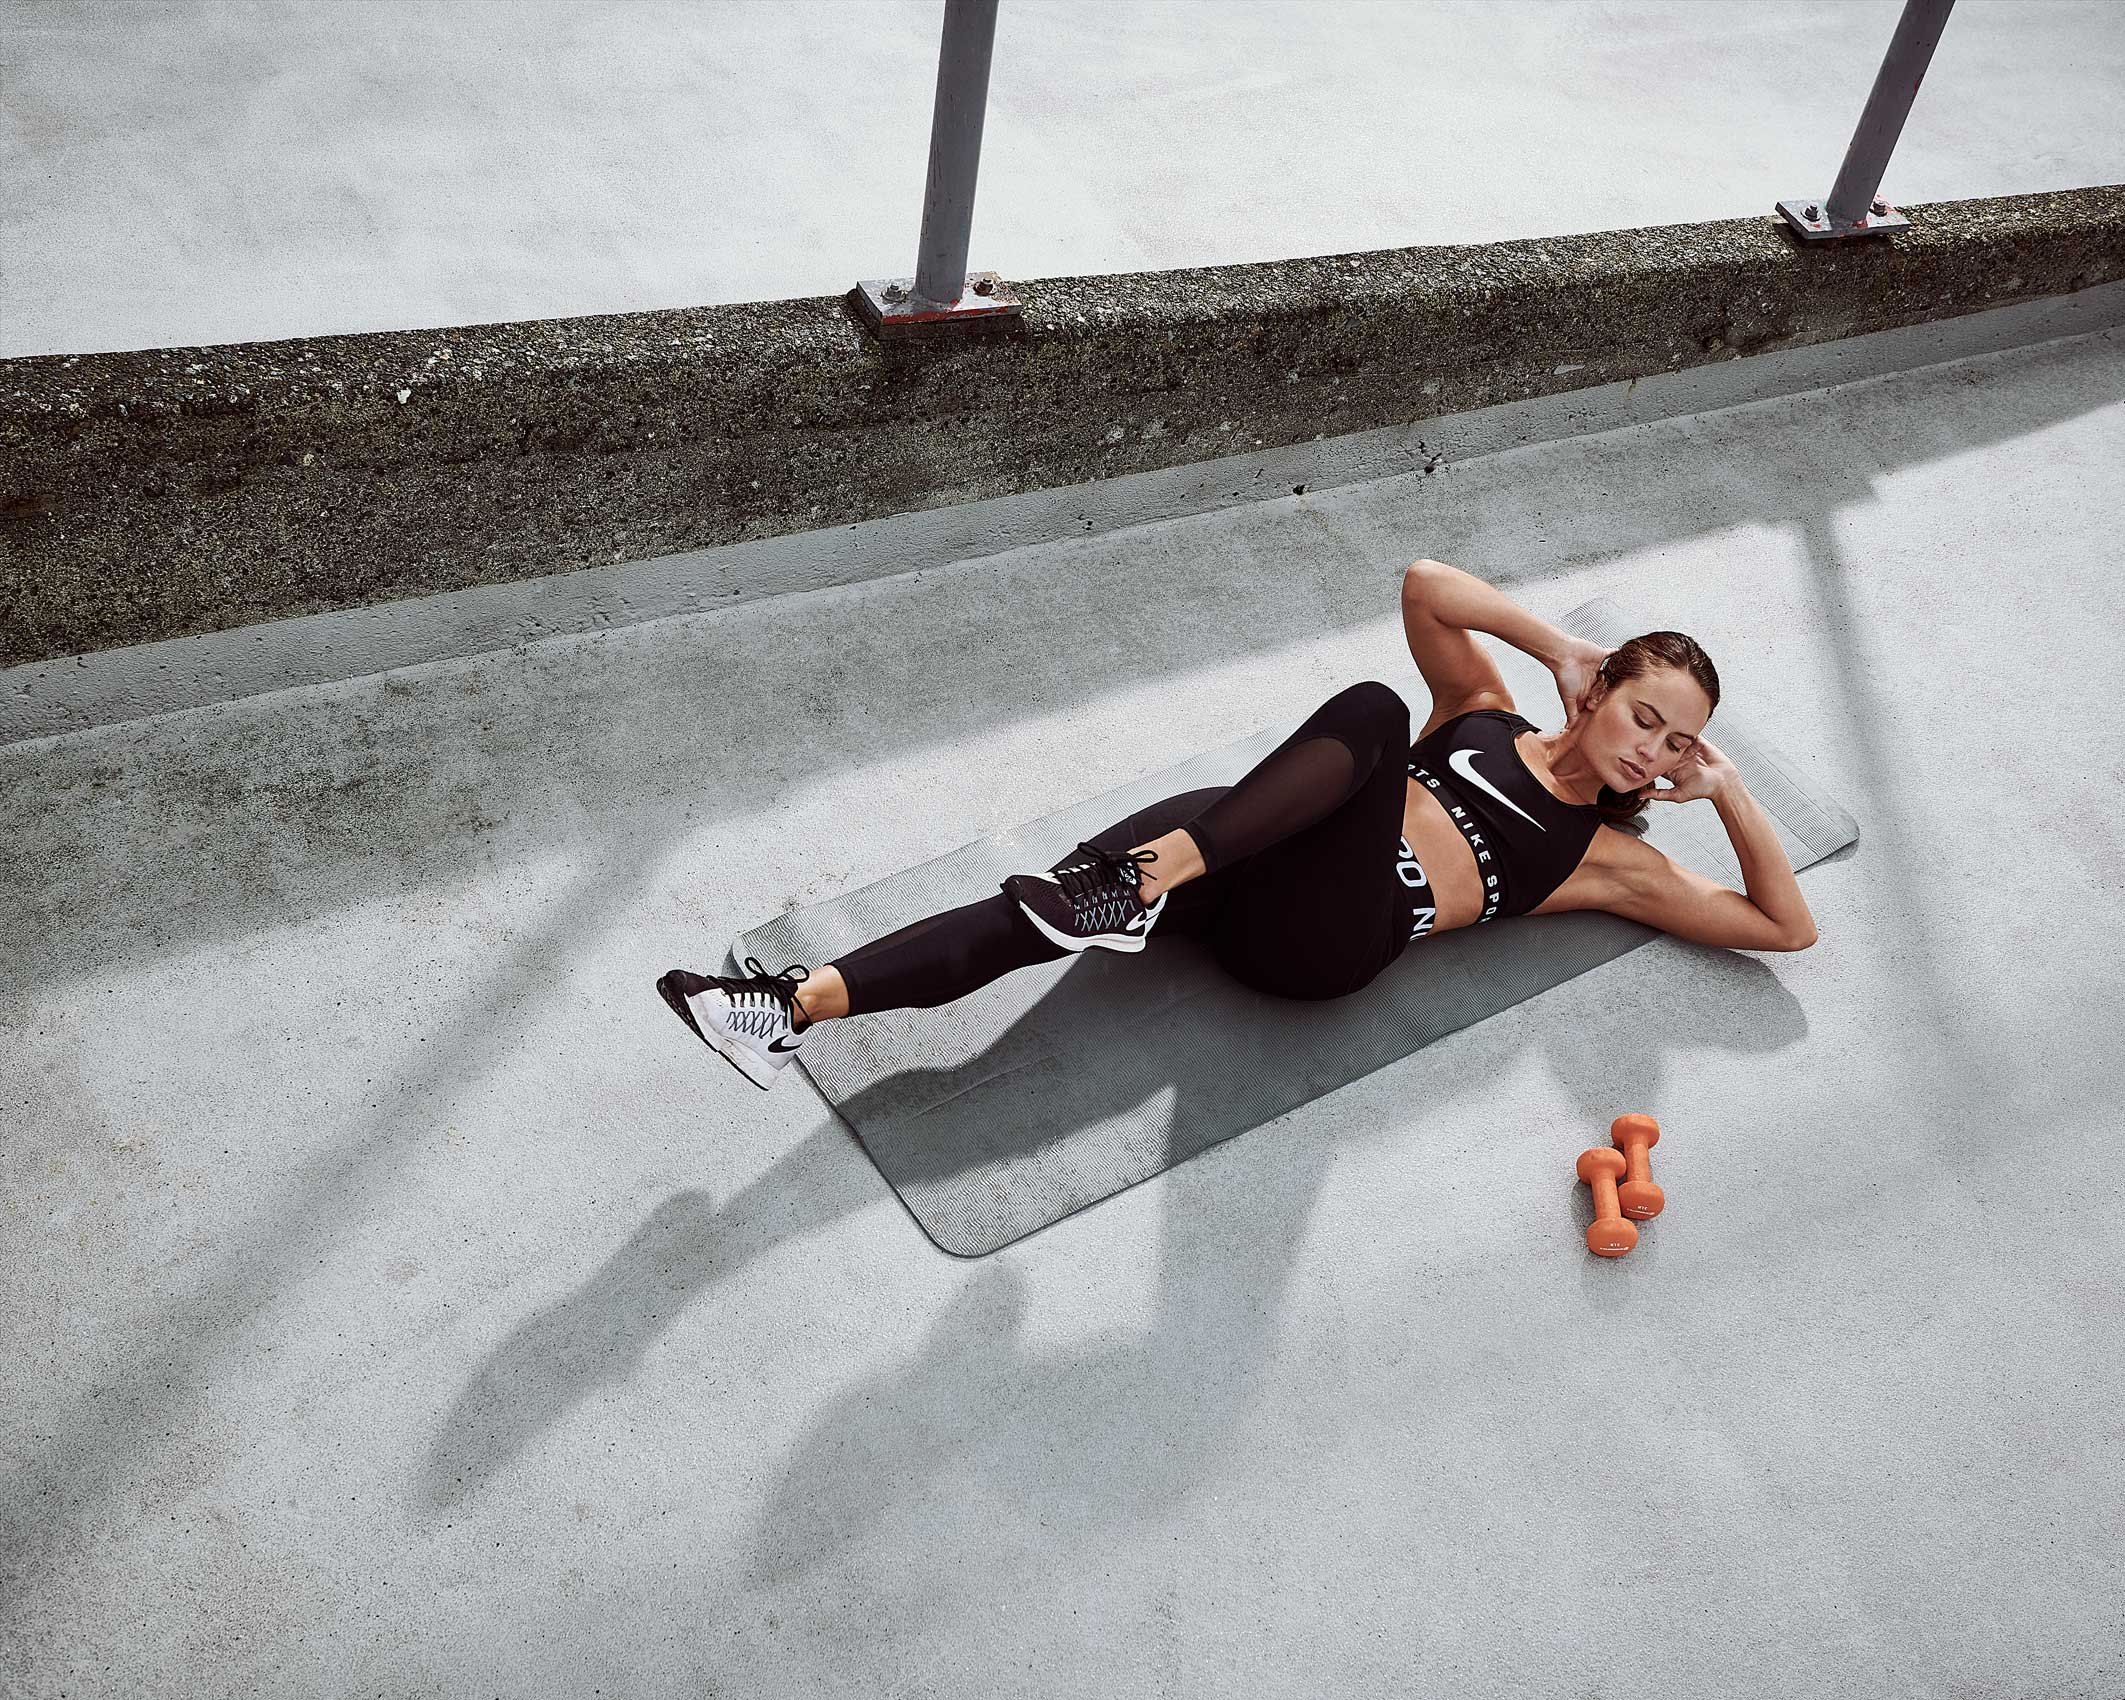 2020-Vancouver-LA-Fitness-Lifestyle-Advertising-Photographer-Erich-Saide-Advertising-Nike-Pro-crushit-Praise-Vaughn